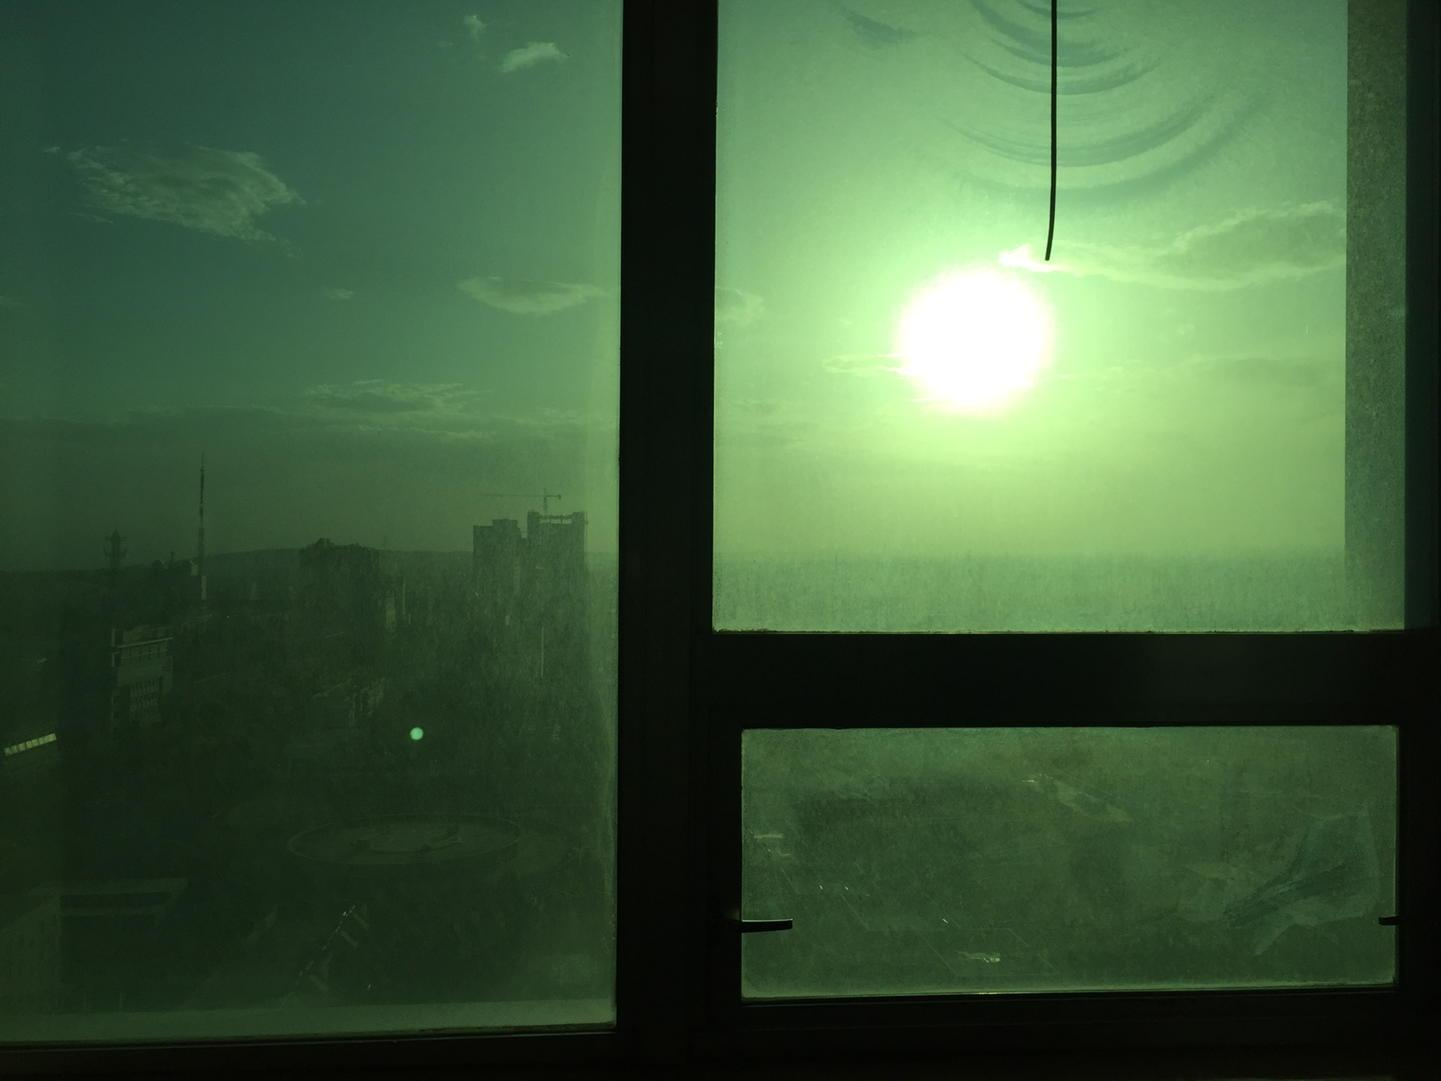 Sunset in Turpan, the hottest place in China. http://t.co/HAjTy3D9pa